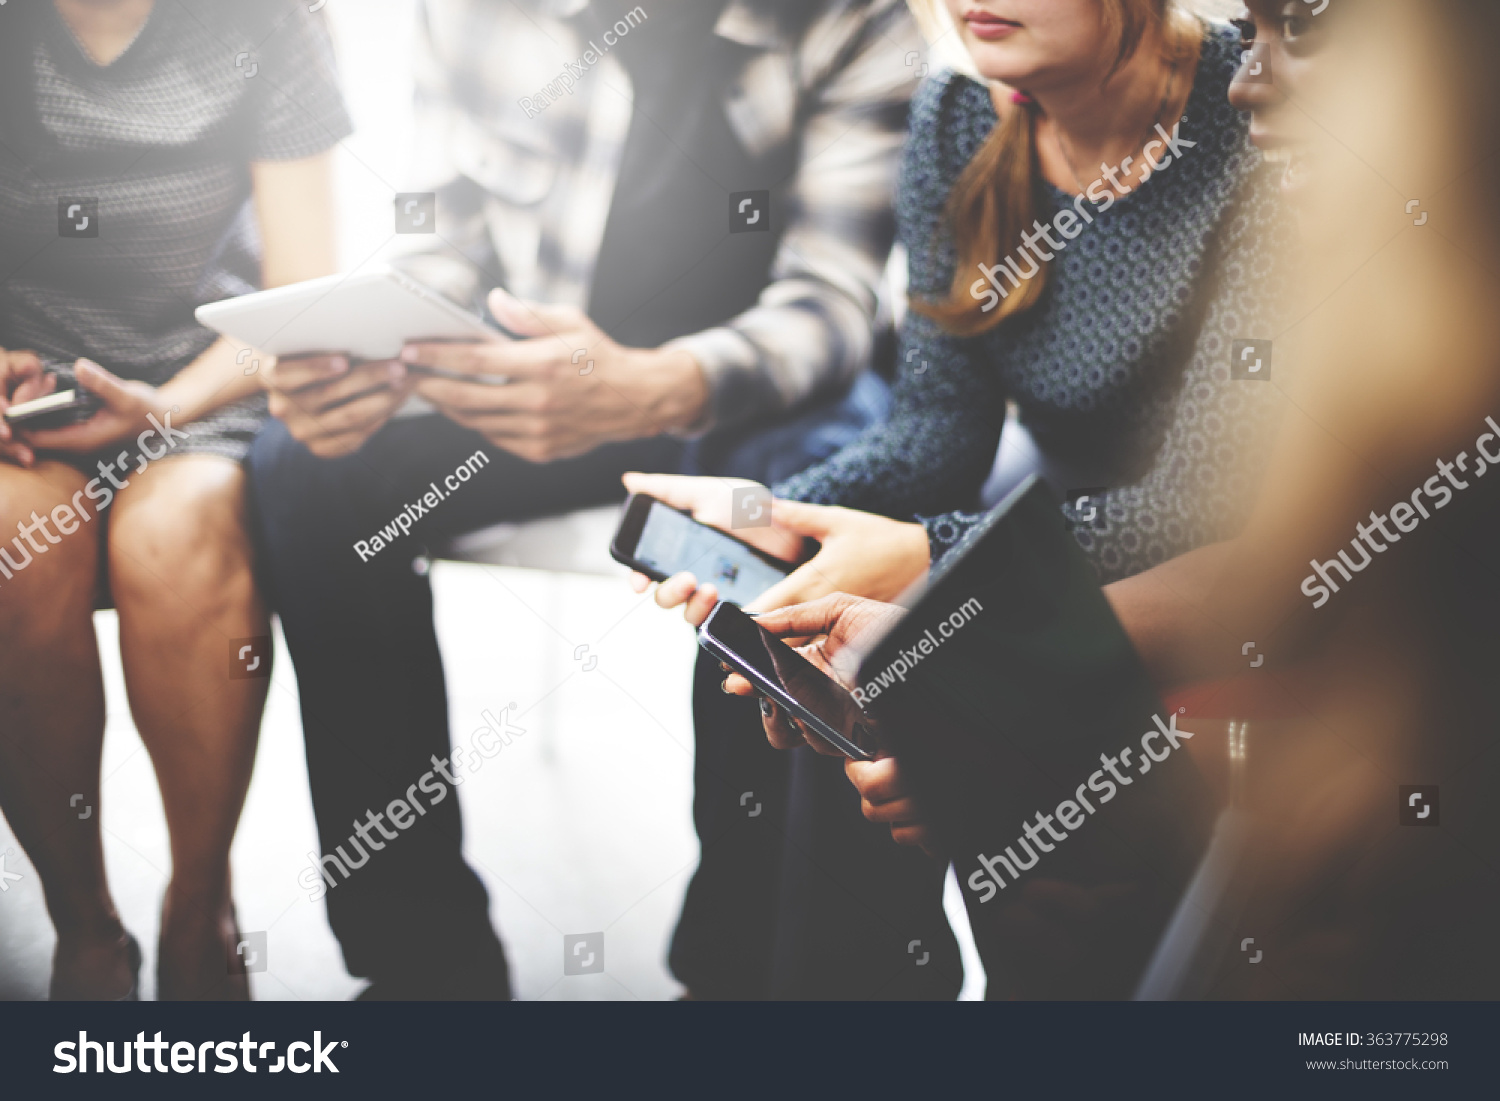 Business Team Digital Device Technology Connecting Concept